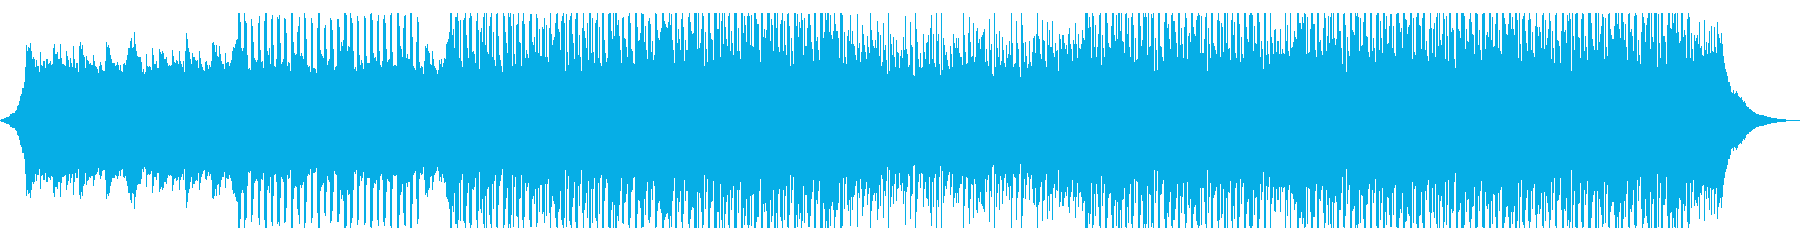 Real Motivation's reproduced waveform